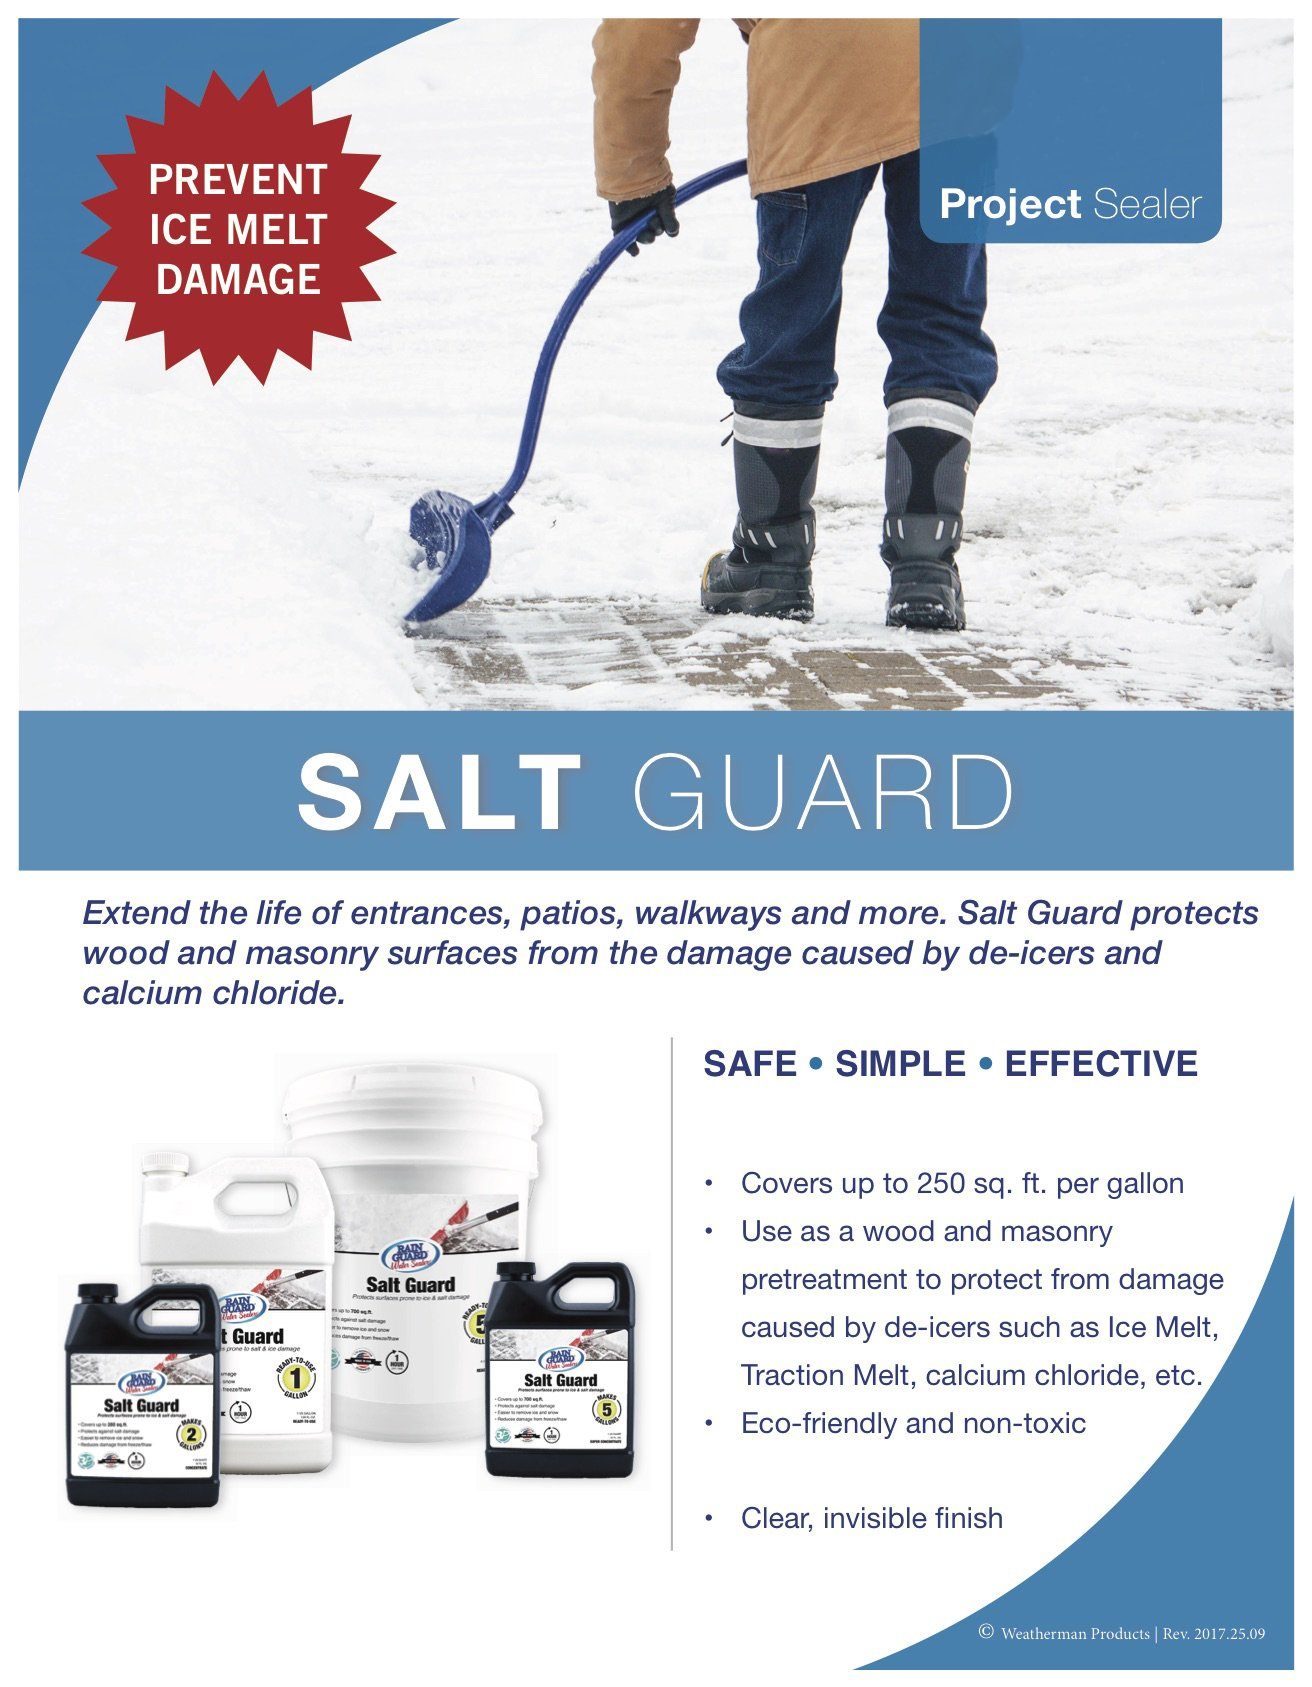 Rainguard International SP-1006 Ready to Use 1 gal Premium Grade Salt Guard, Protection from Road Salt and Ice Damage, Clear